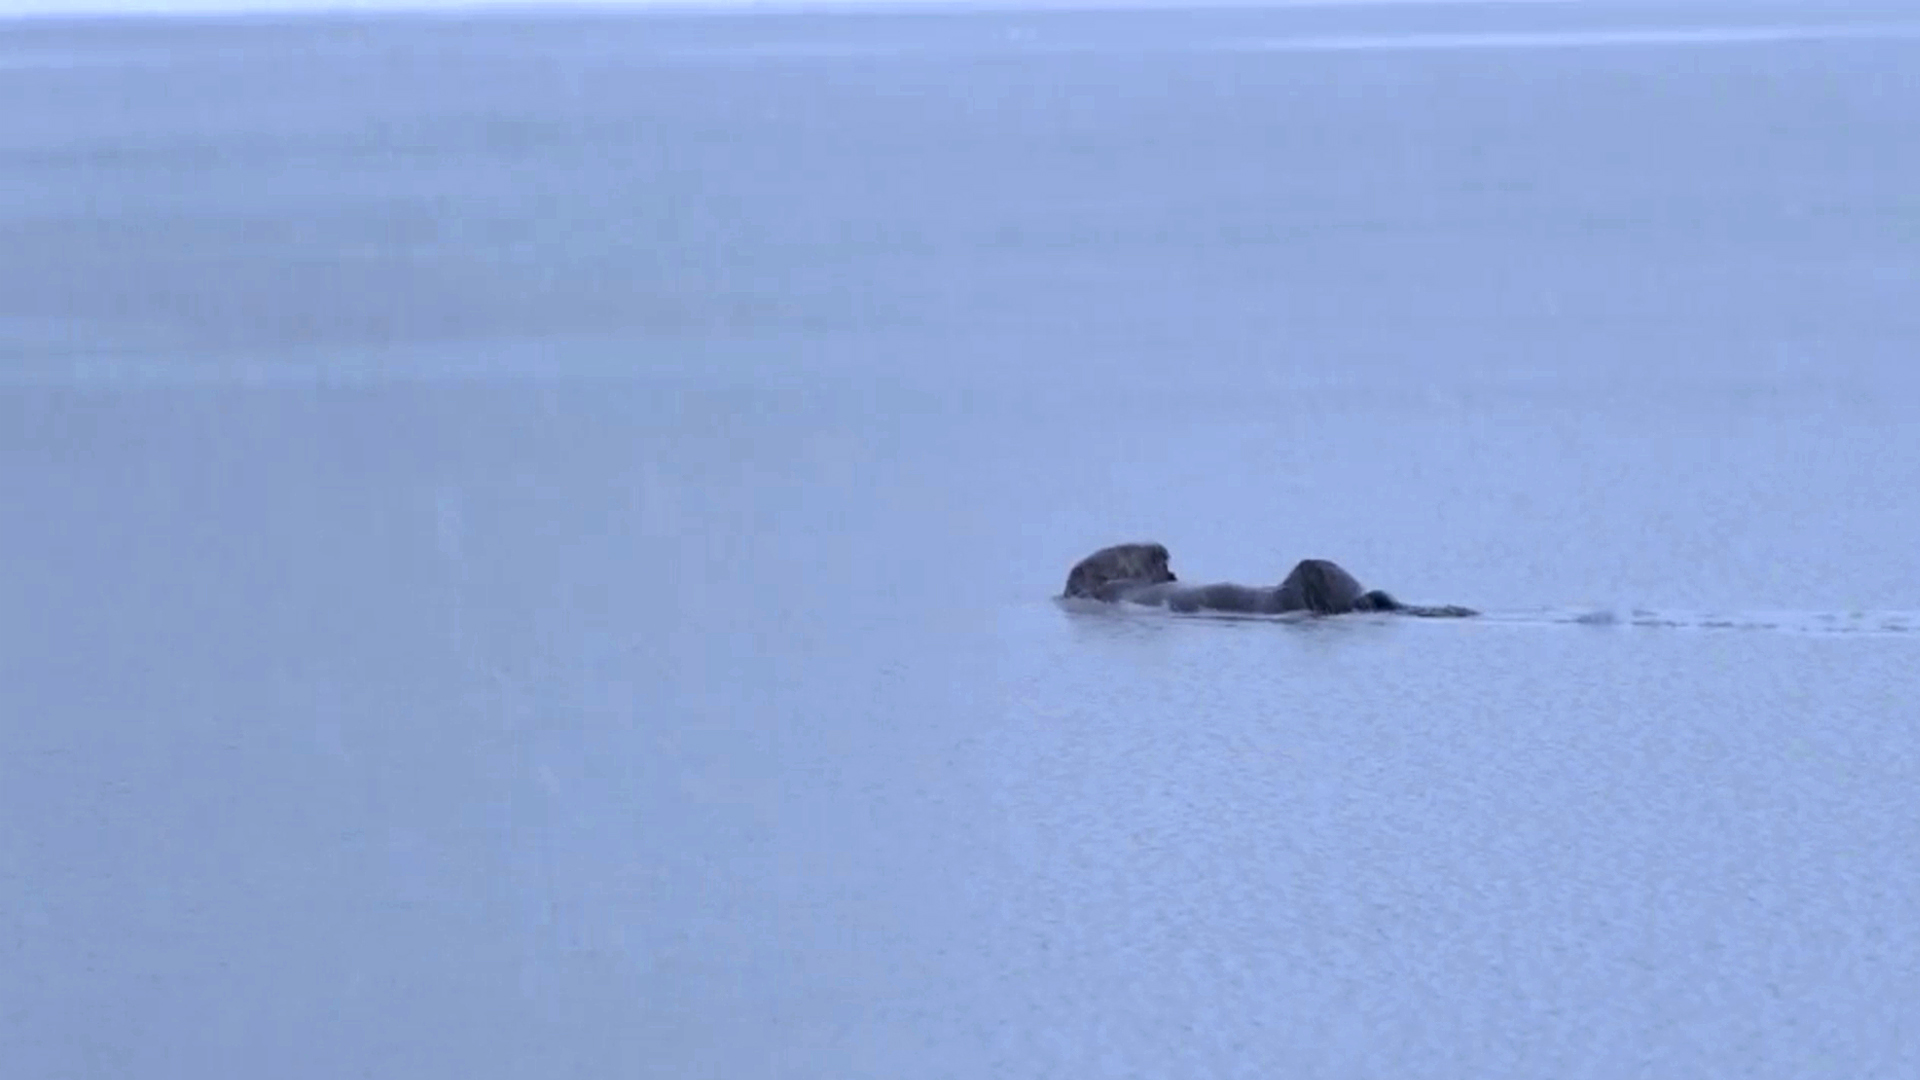 VIDEO: Adorable Otter Swimming During Heavy Snowfall In Search Of Fish